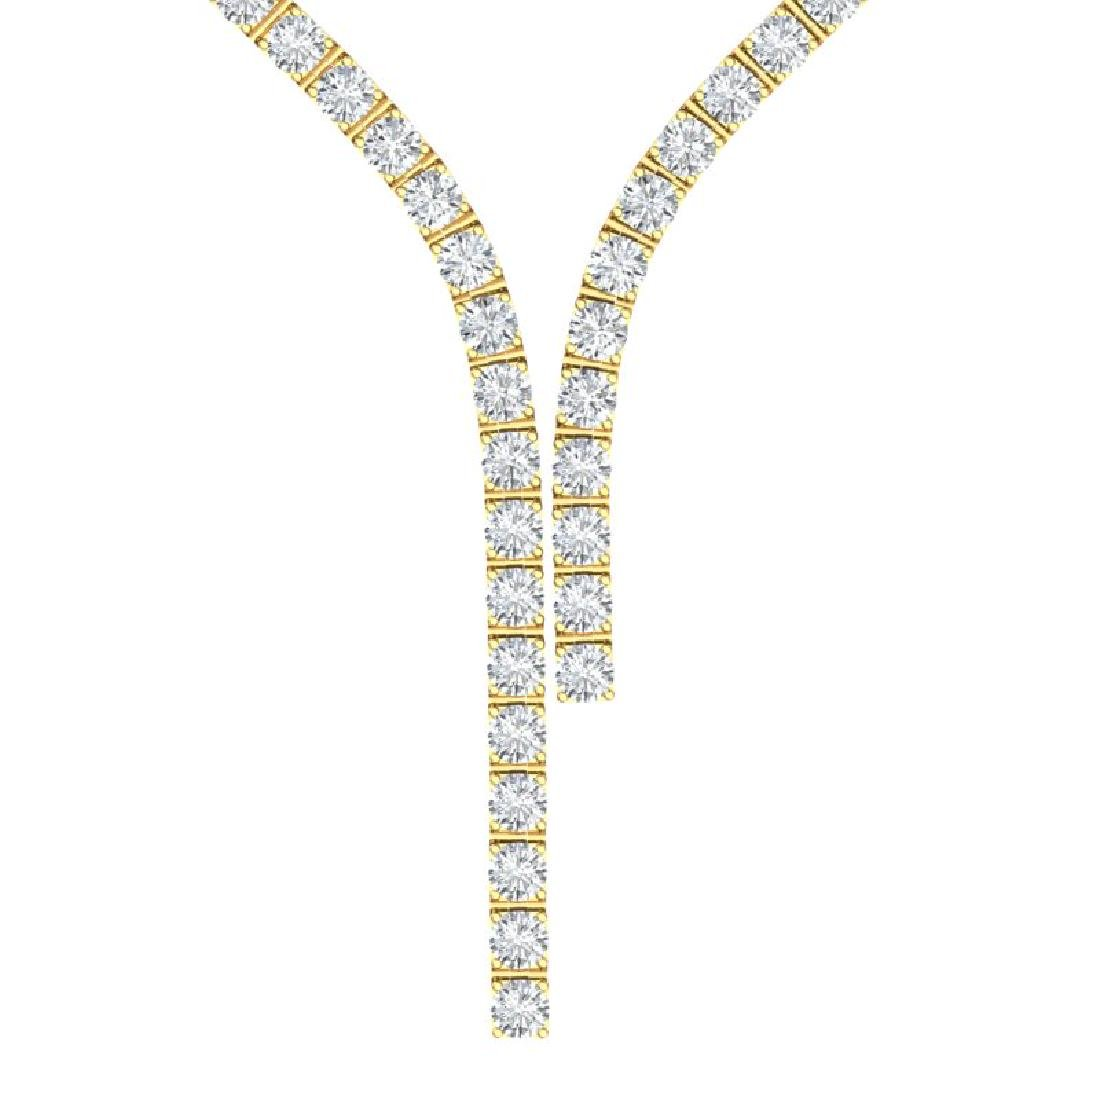 25 CTW Certified VS/SI Diamond Necklace 18K Yellow Gold